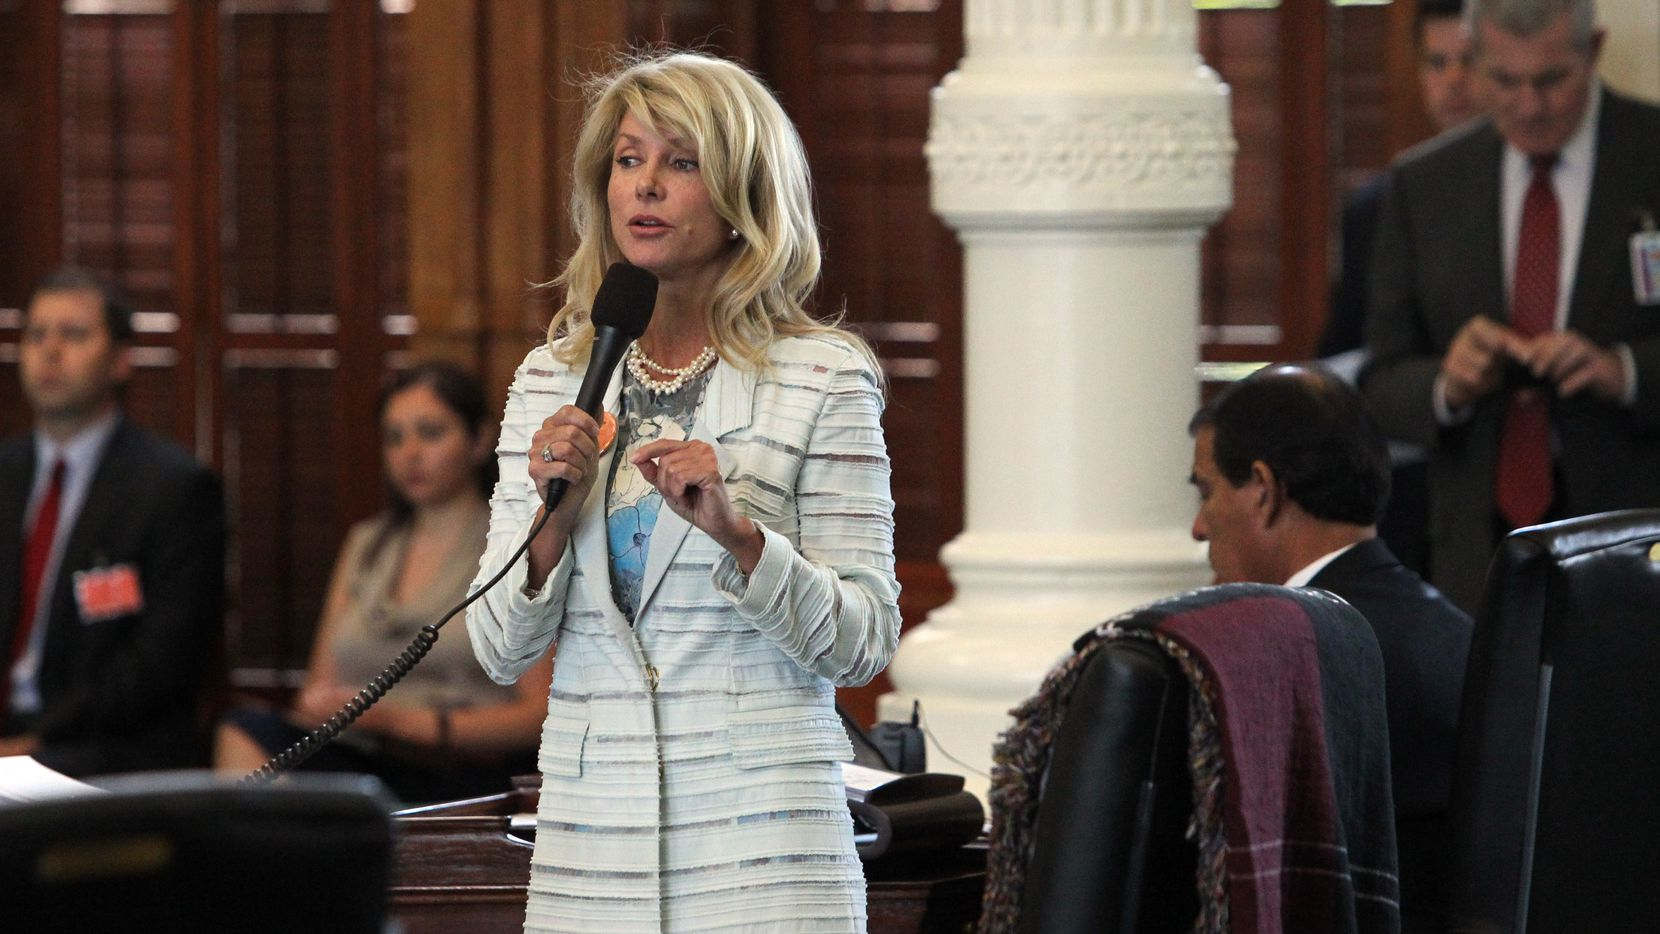 State Senator Wendy Davis filibusters during the final day of the legislative special session, as the Senate considers an abortion bills on Tuesday, June 25, 2013.  (Louis DeLuca/Dallas Morning News)